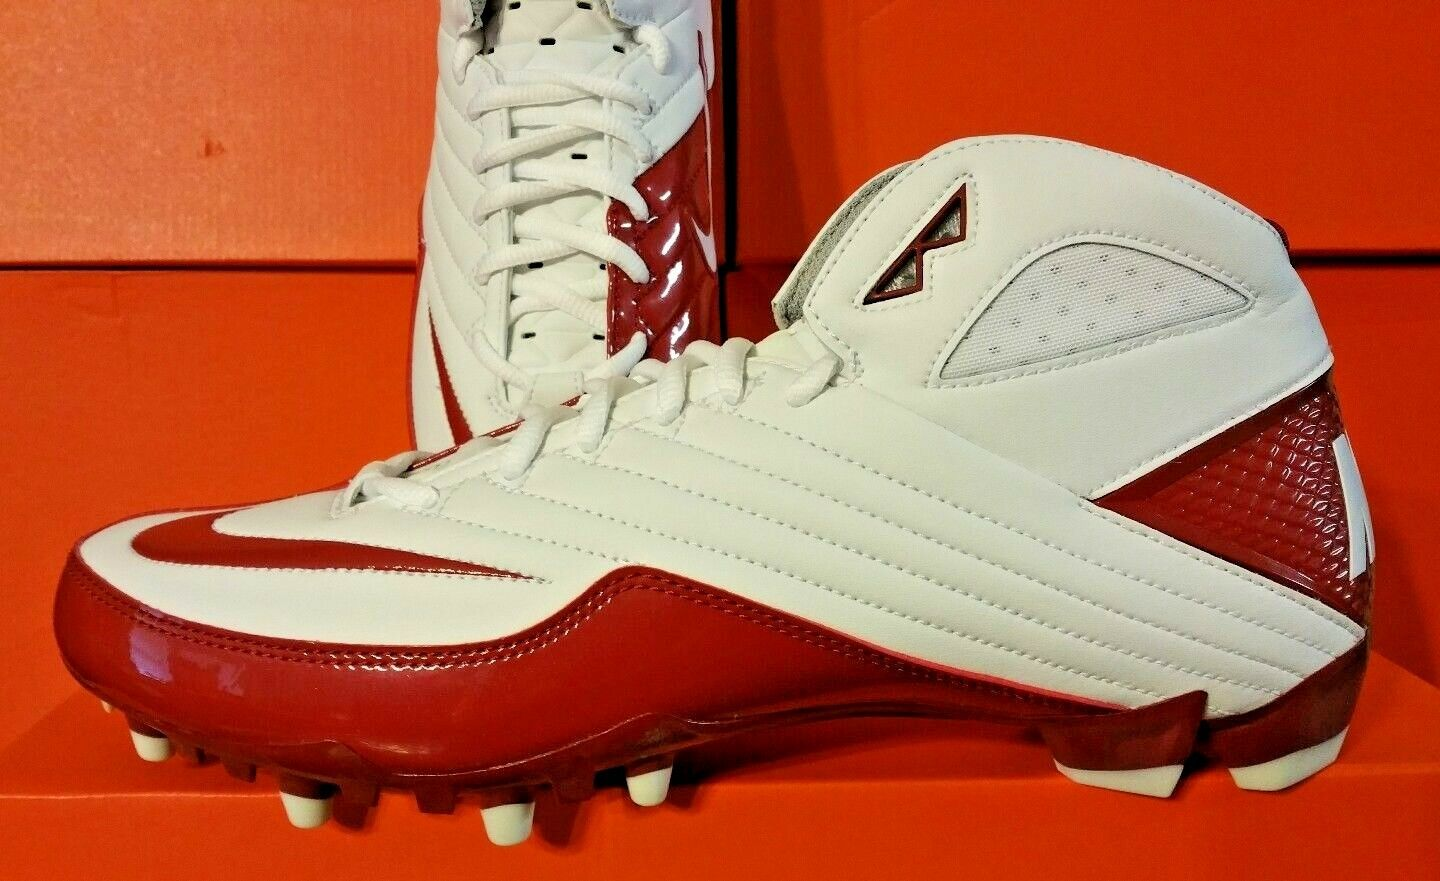 NEW RED/WHITE Nike Super Speed TD 3/4 Football Cleats RED/WHITE NEW 396254 191 SOCCER Retail 743e8c